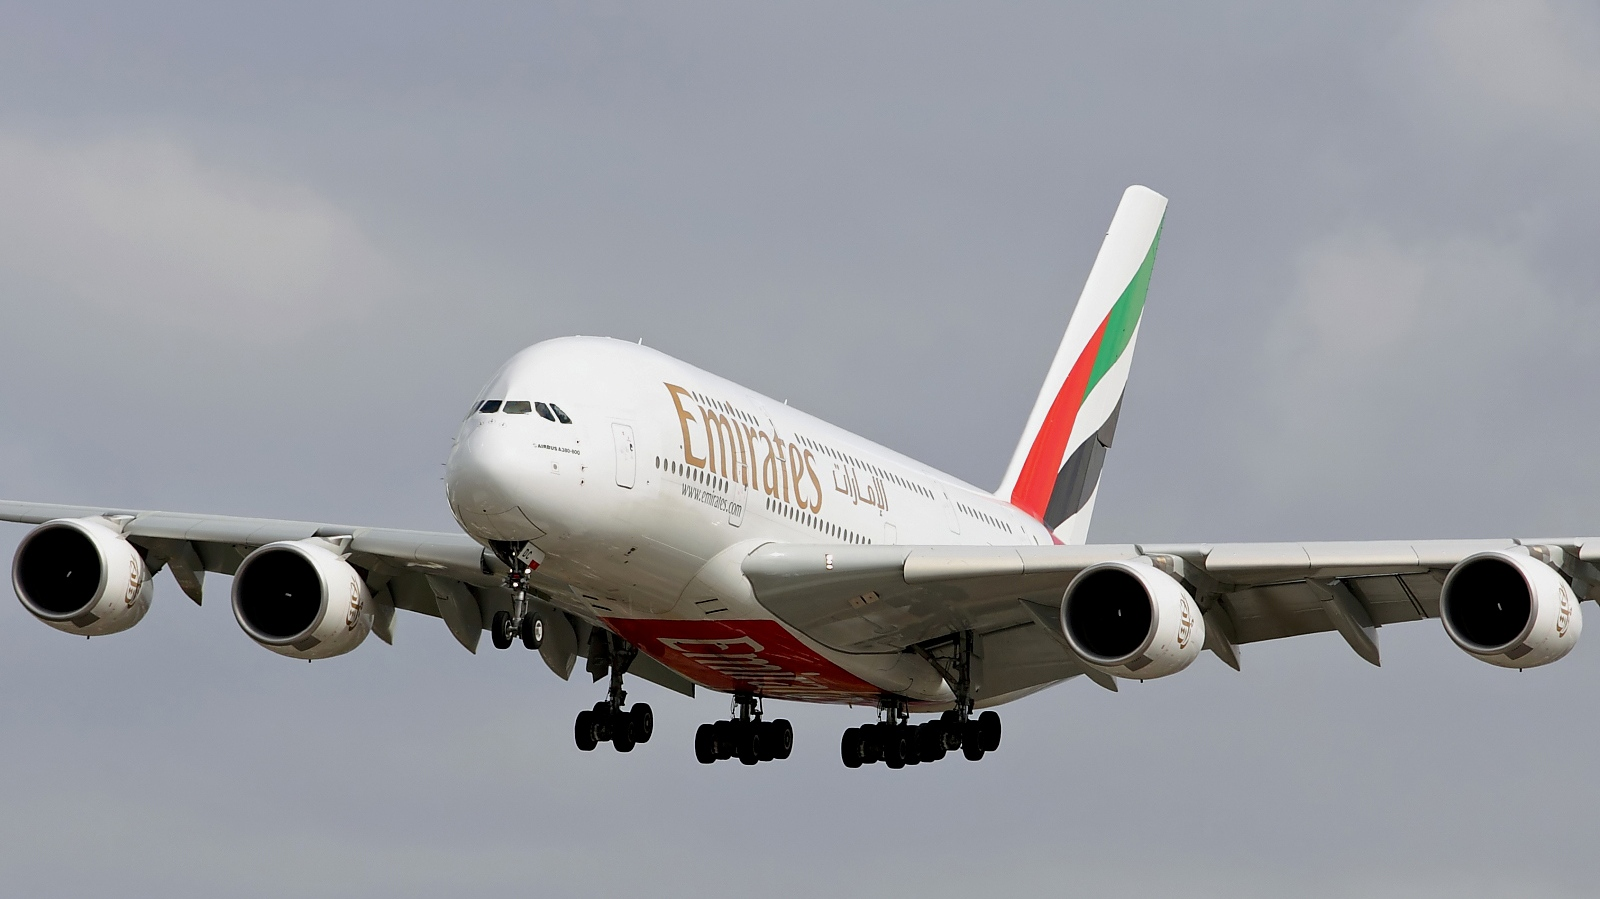 Emirates Airbus A380 AIRCRAFT WALLPAPER 1600x899